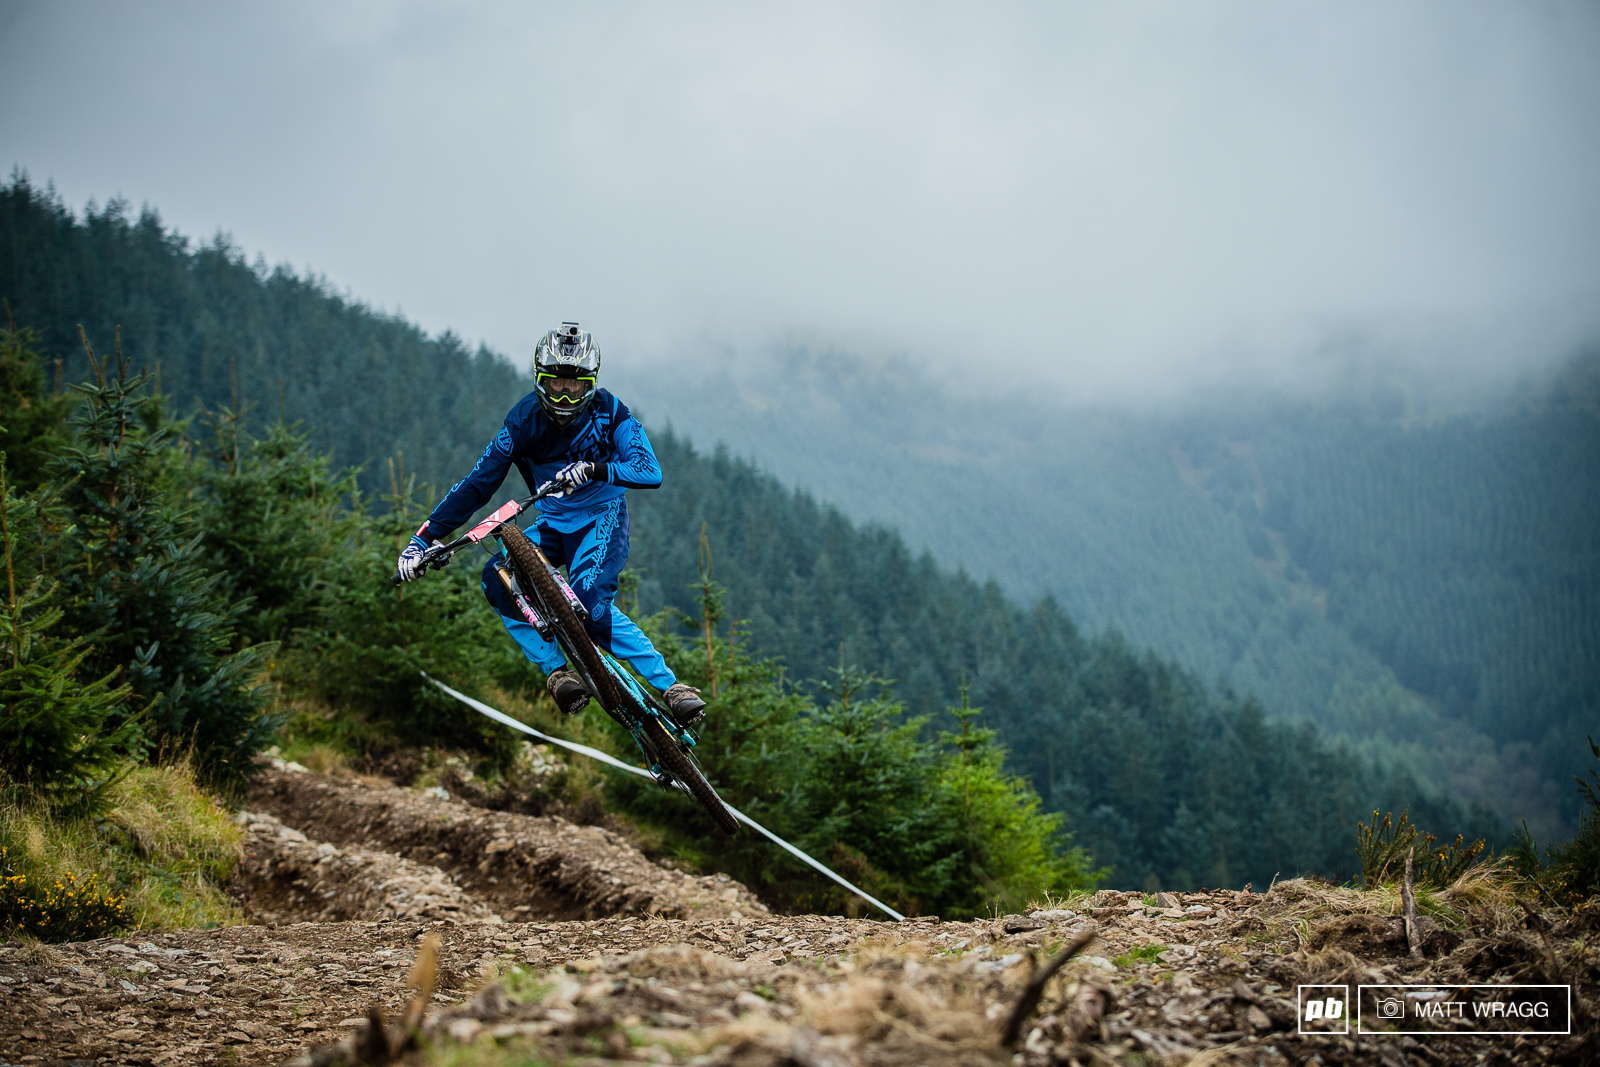 The clouds rolled around the mountains all weekend making a misty backdrop to the action.